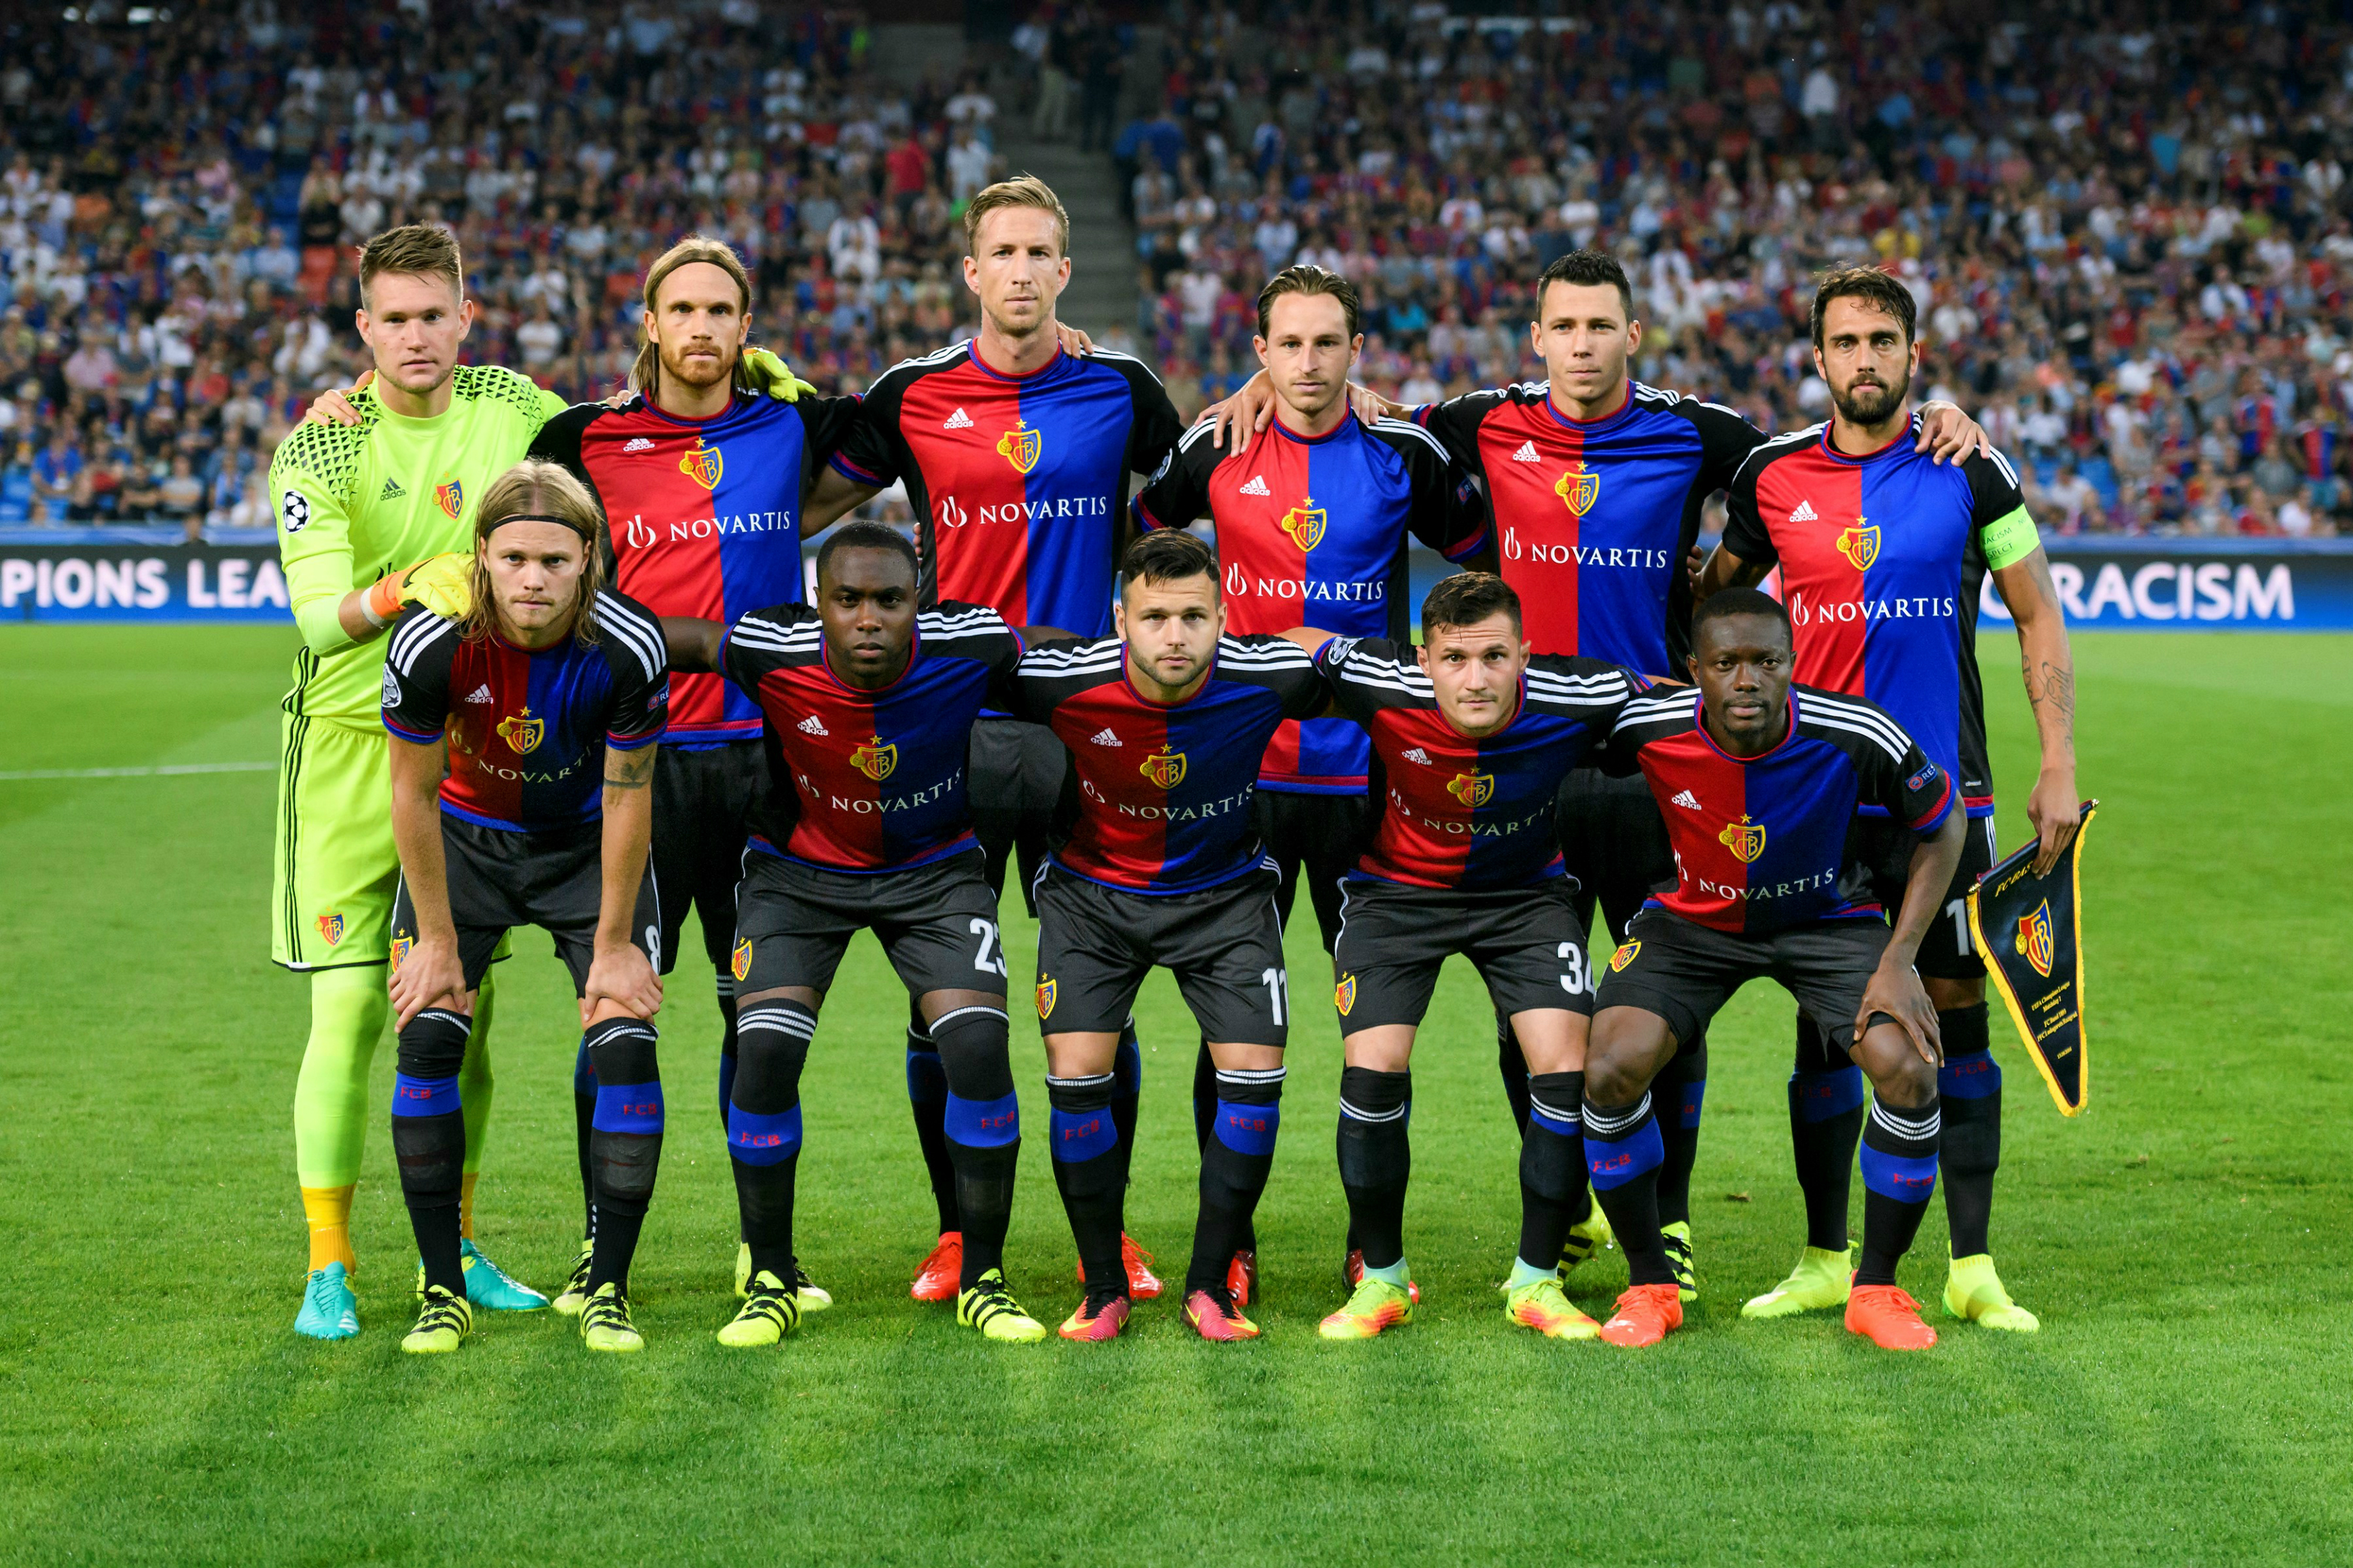 The Basel team posing for a photo.